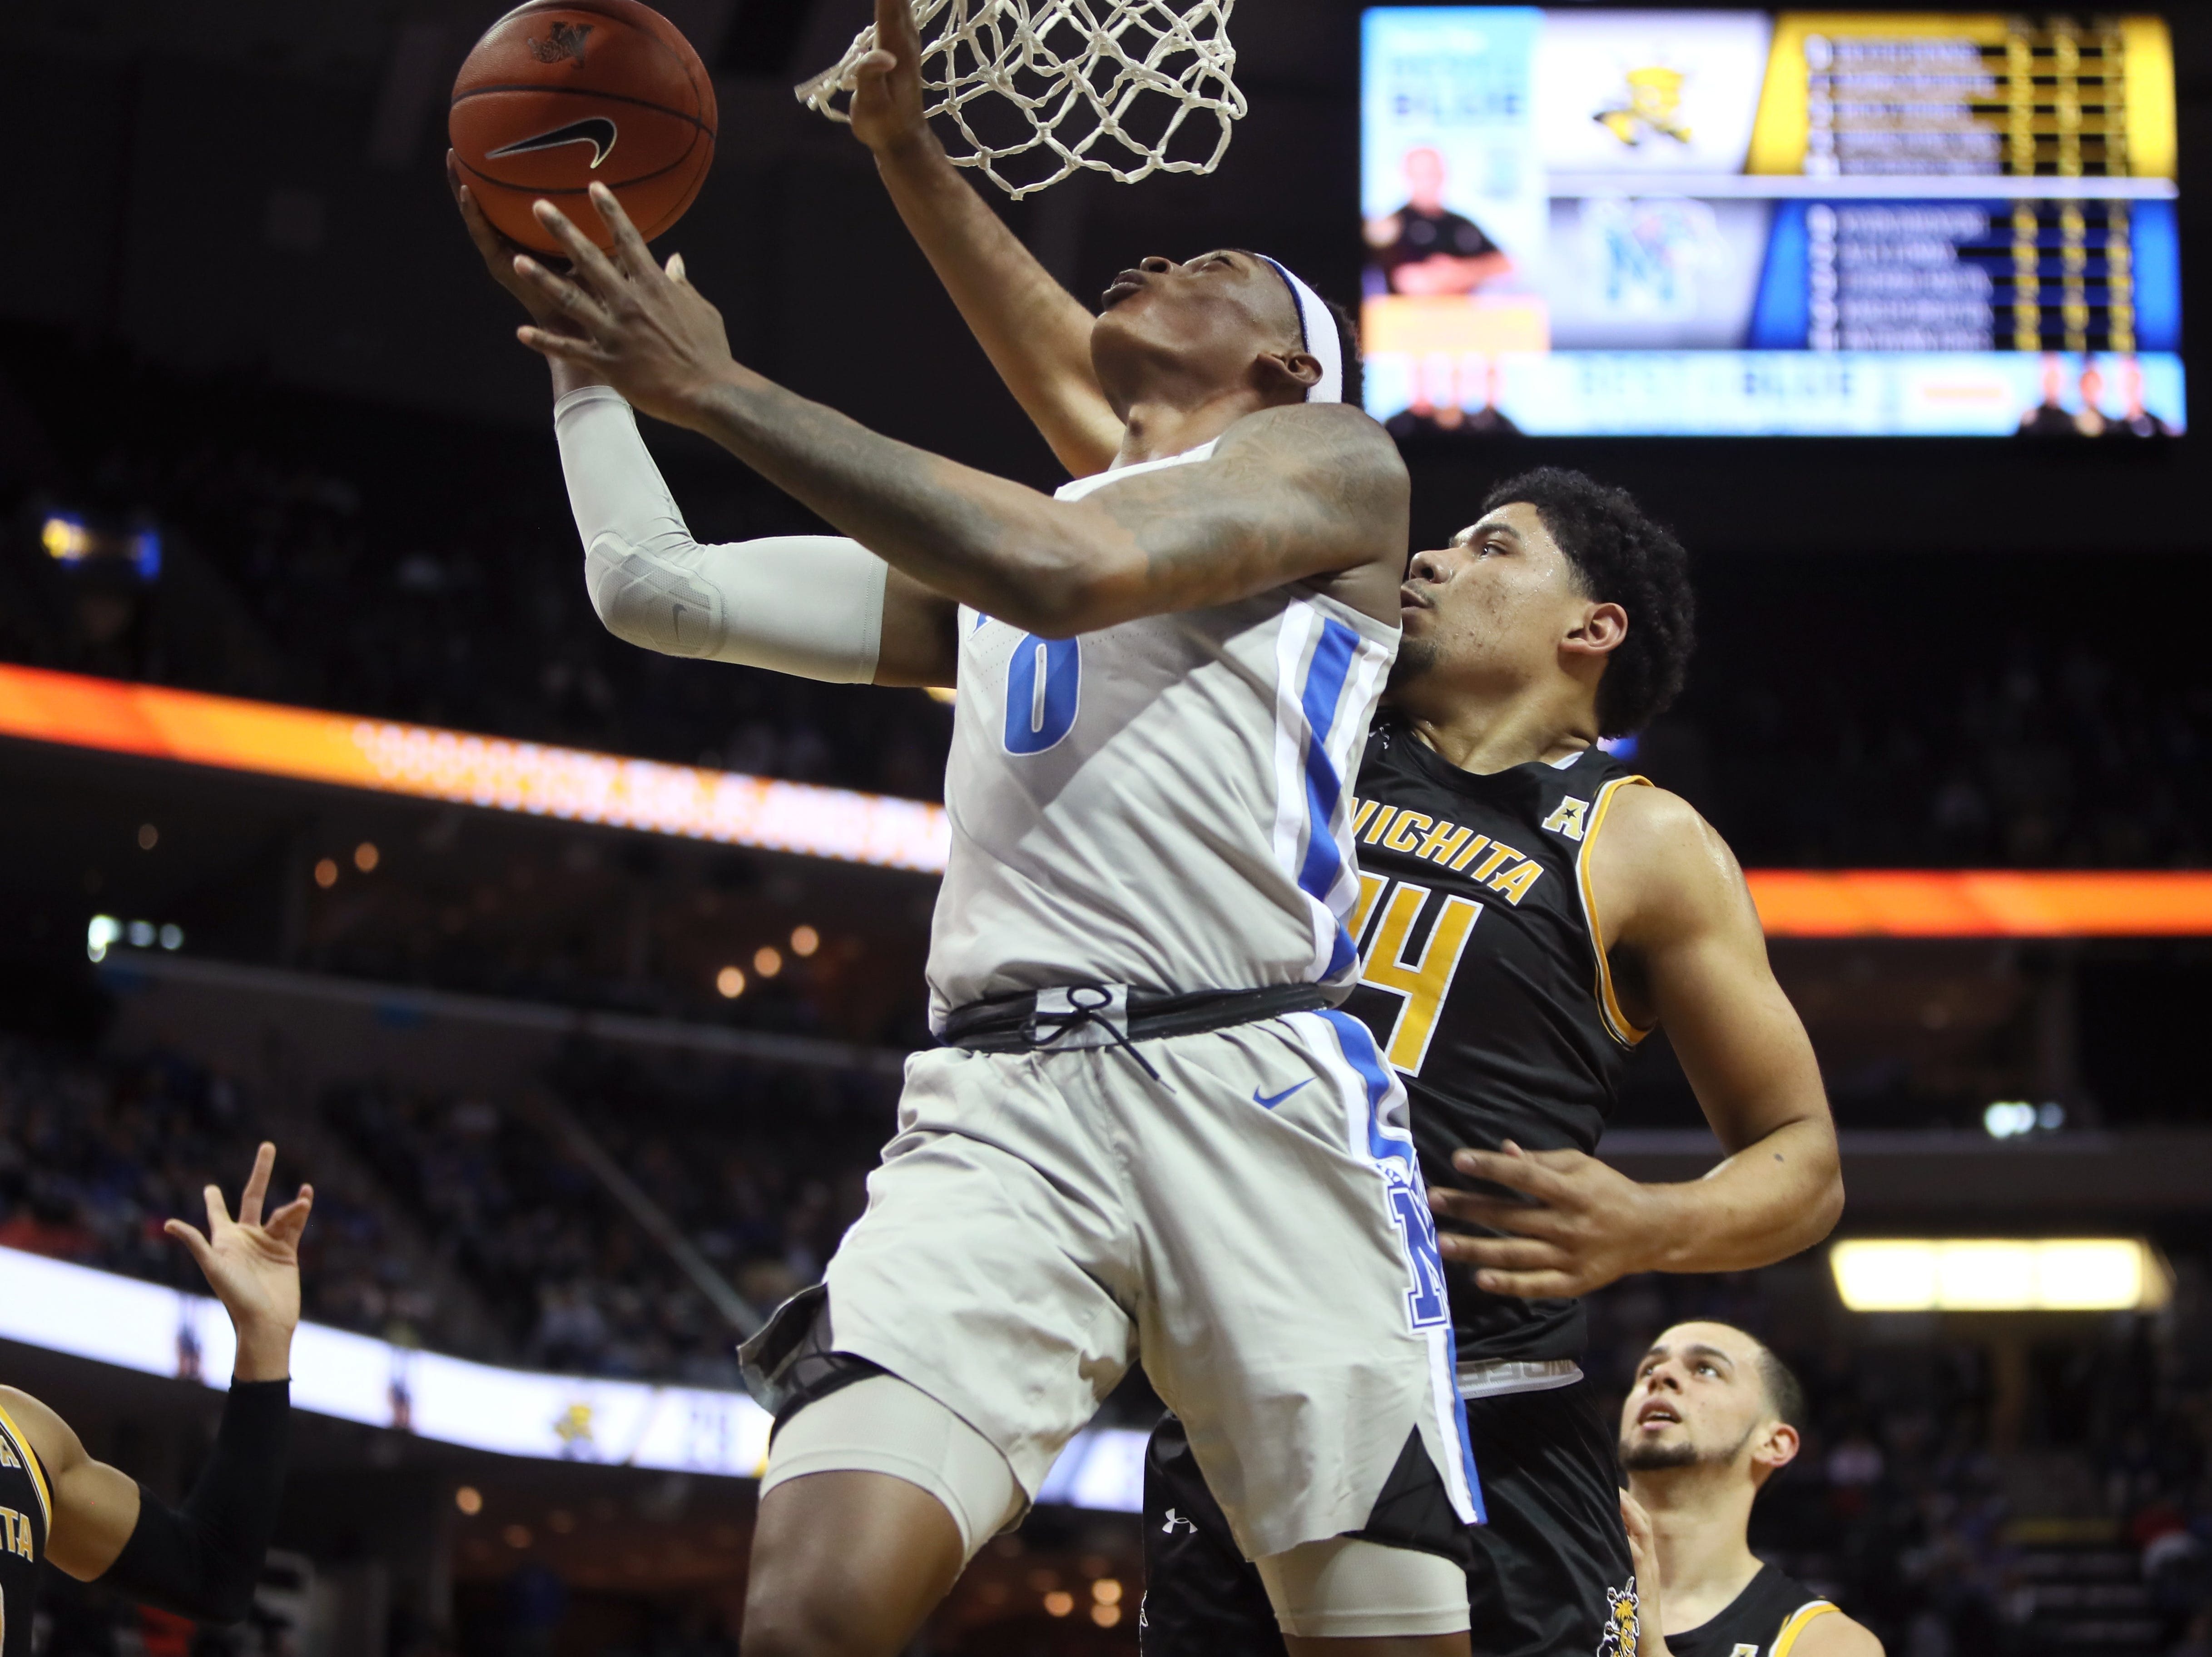 Memphis Tigers forward Kyvon Davenport shoots the ball over Wichita State Shockers forward Isaiah Poor Bear-Chandler during their game at the FedExForum on Thursday, Jan. 3, 2019.